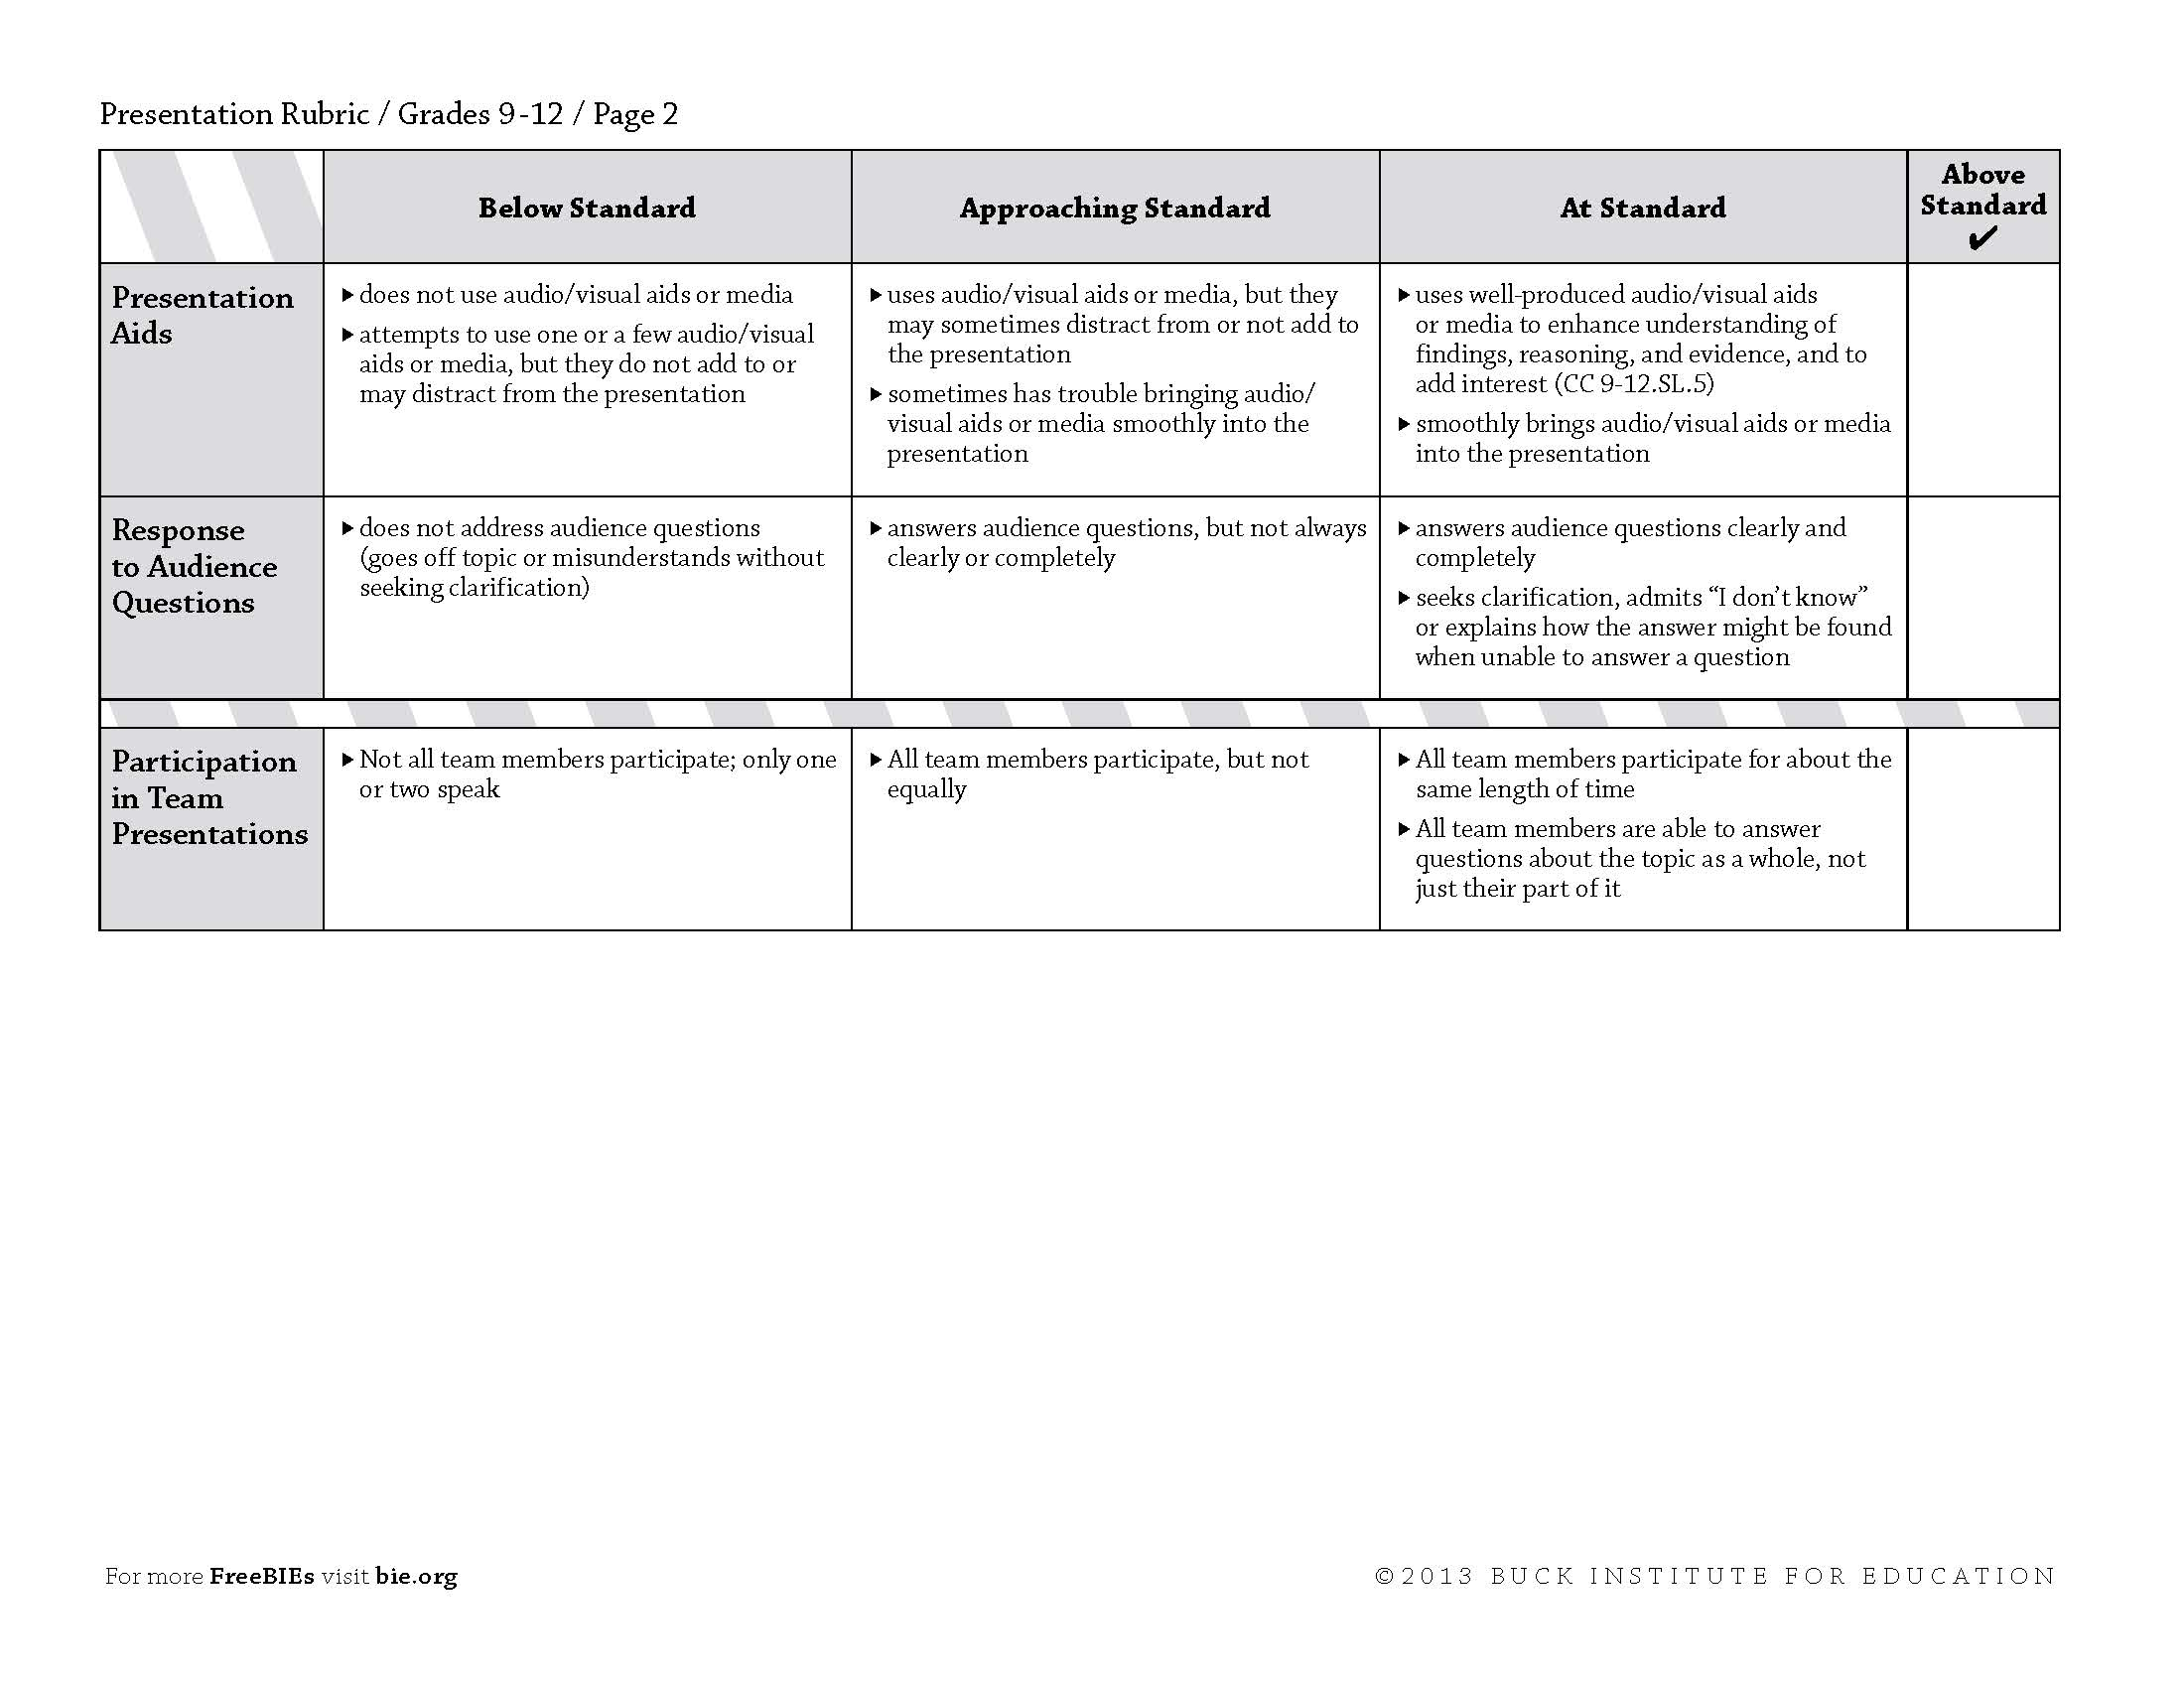 photograph about Interest Inventory for Middle School Students Printable titled Evaluation and Rubrics - Kathy Schrocks Expert in the direction of Nearly anything